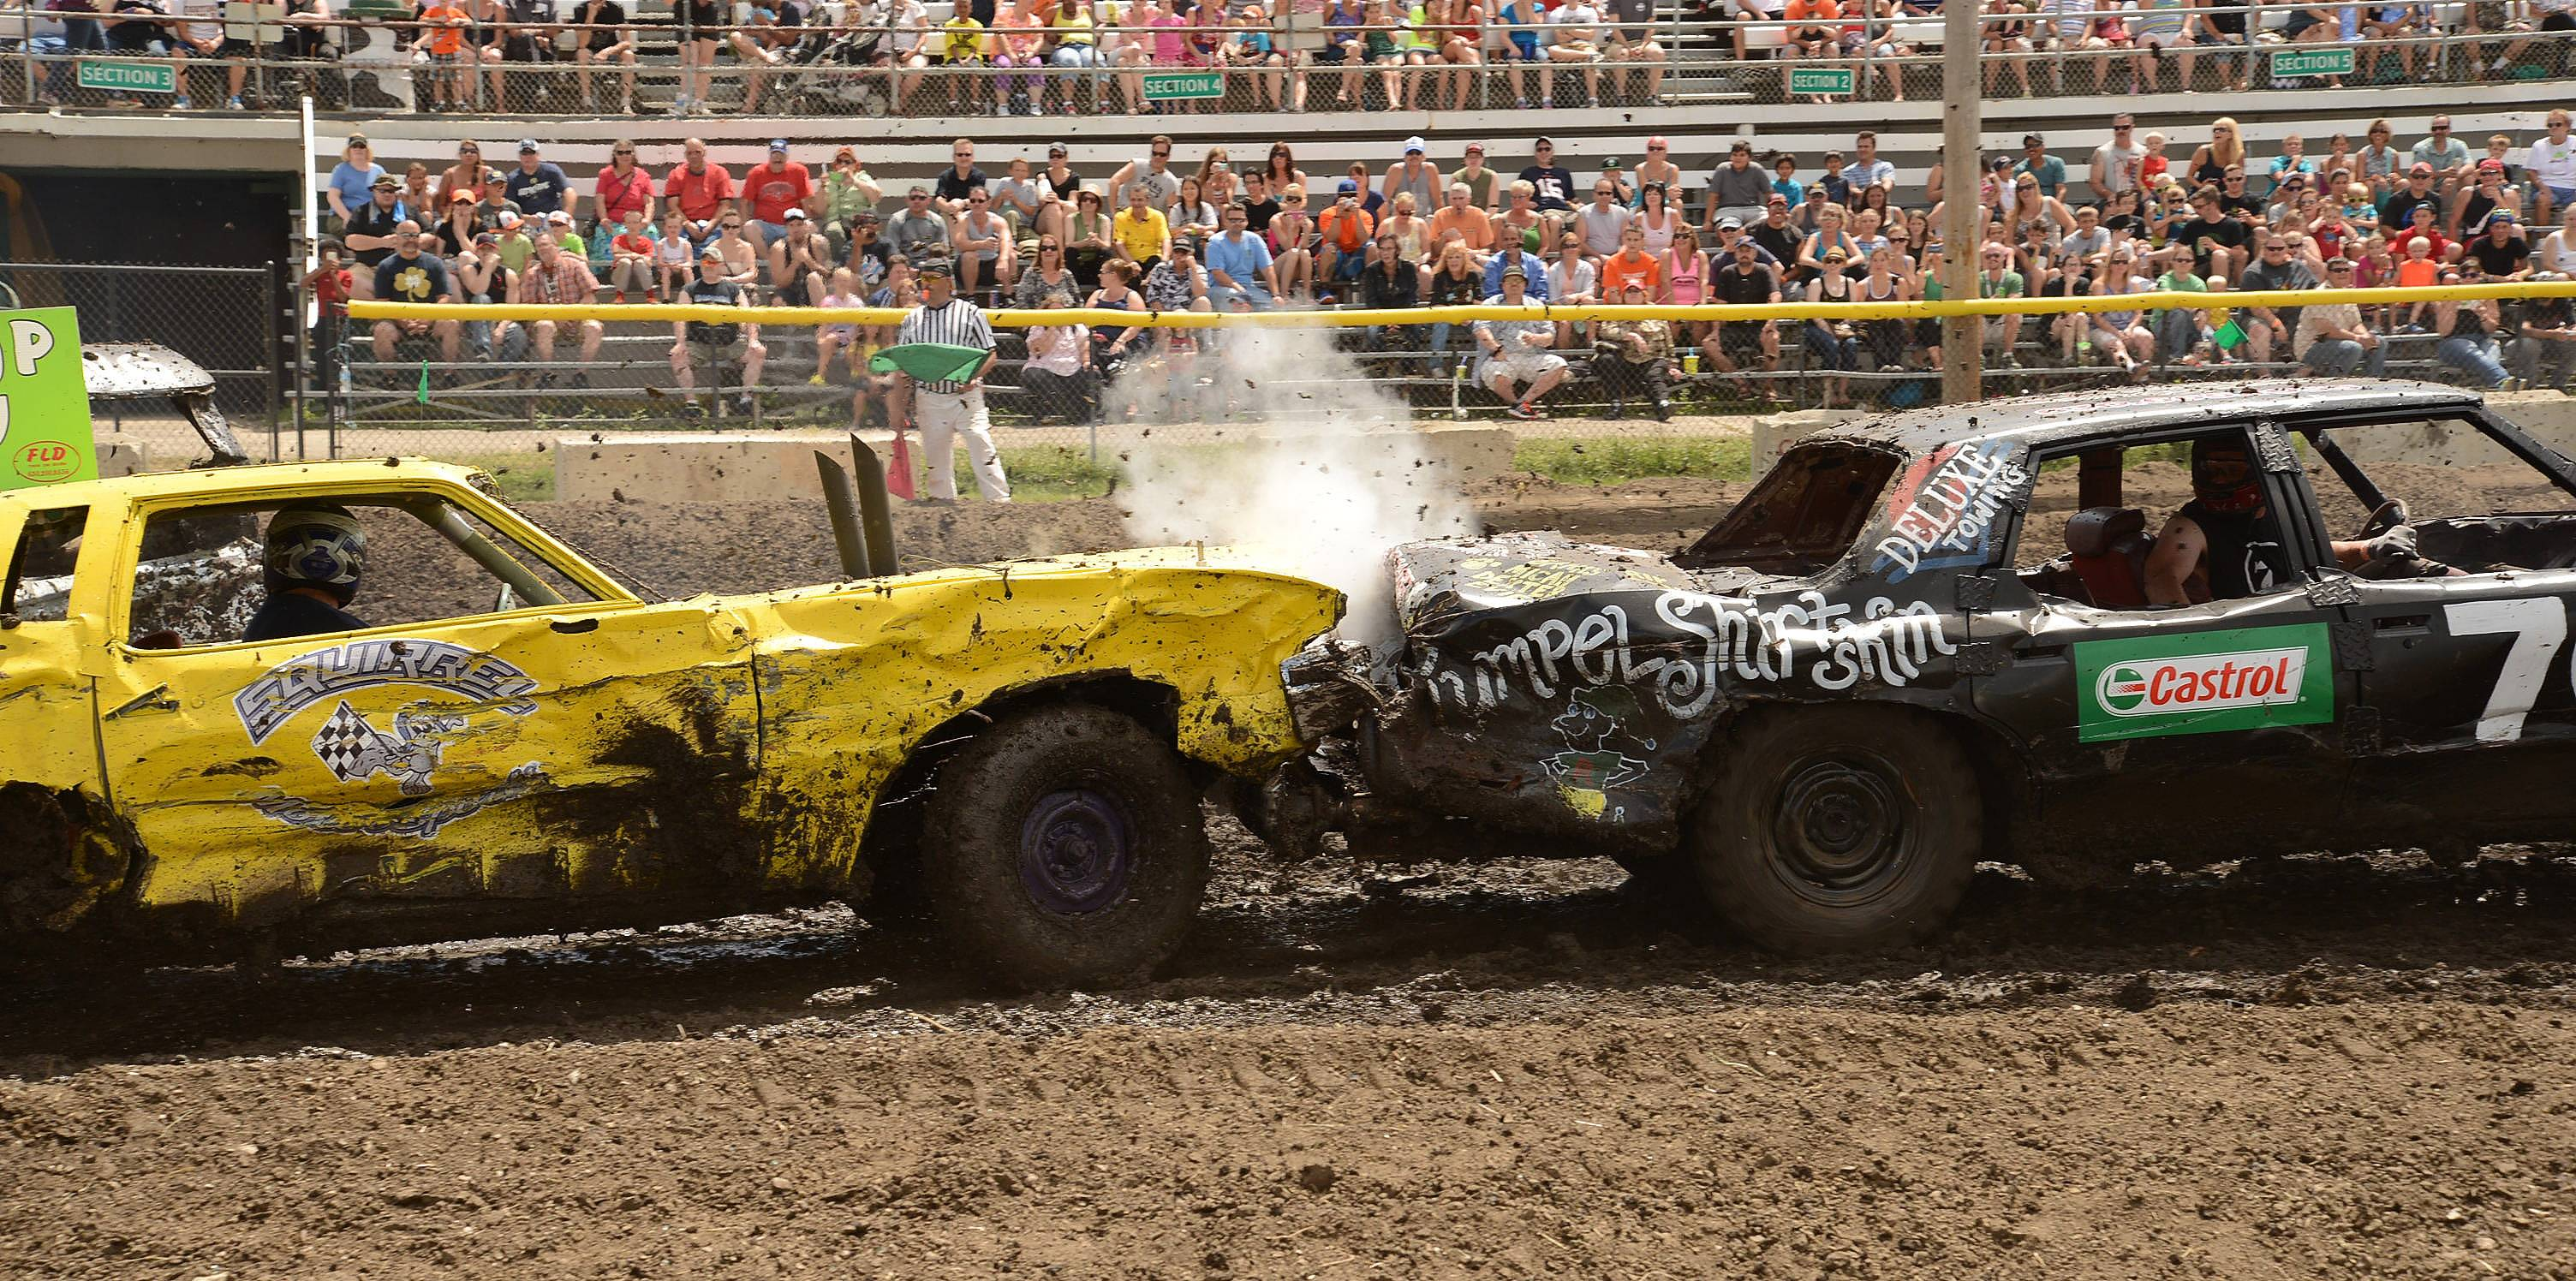 Jay Oppenheim of Wheaton, right, puts a hit on Patrick Wyller, also of Wheaton, Sunday during the demolition derby on the final day of the DuPage County Fair.